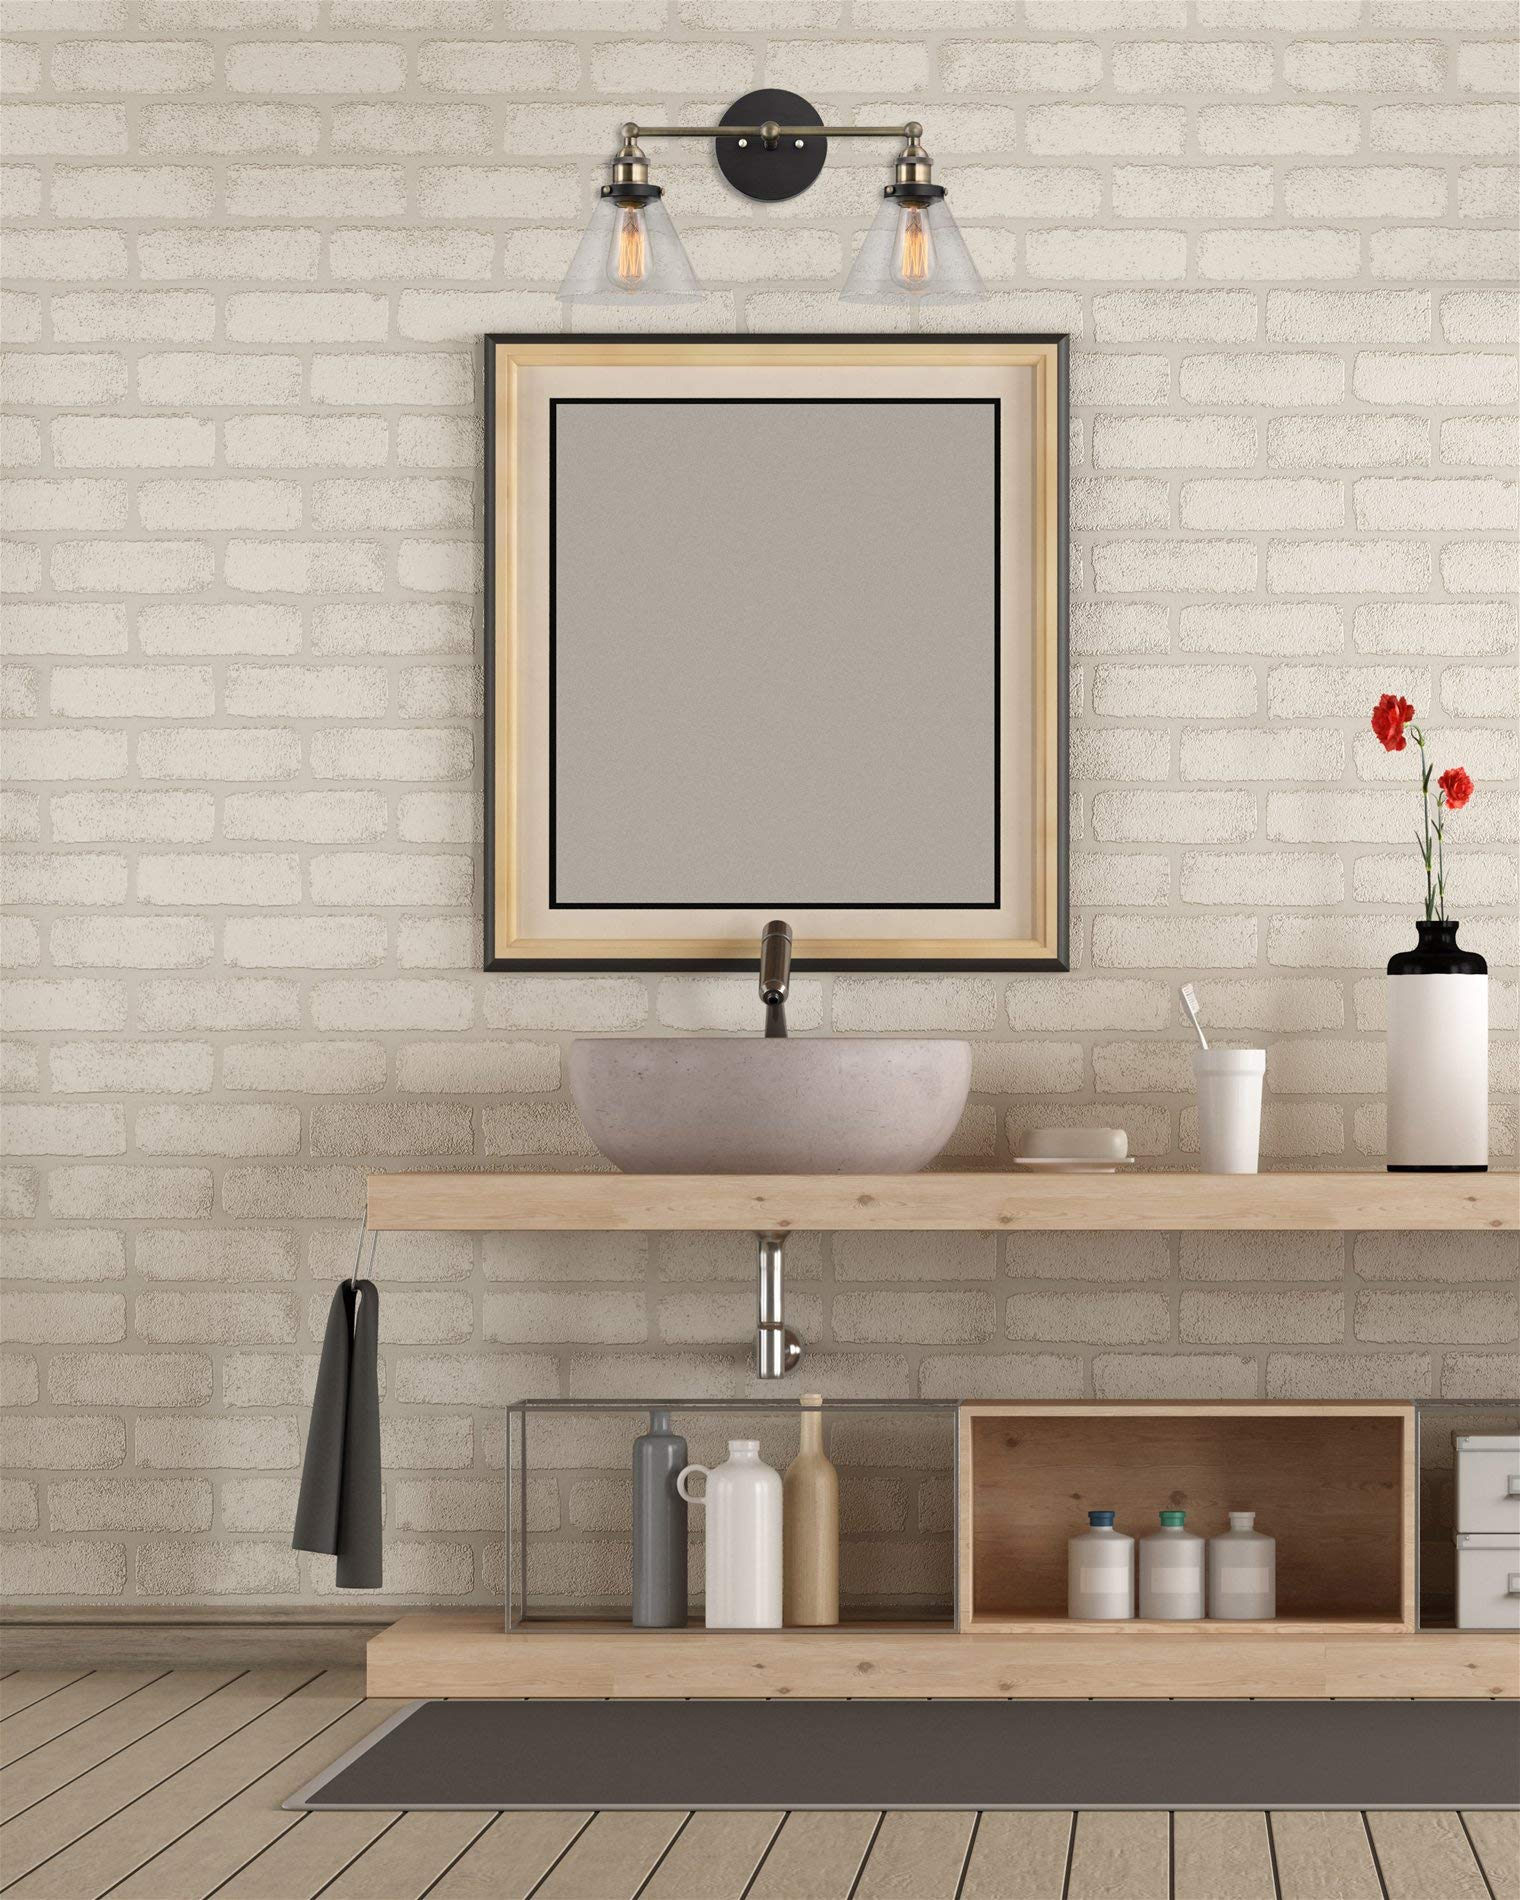 Kira Home Indie 19'' Mid-Century Industrial Edison 2-Light Bathroom/Vanity Wall Sconce + Clear Glass Shades, Antique Brass Accents, Brushed Matte Black Finish by Kira Home (Image #4)